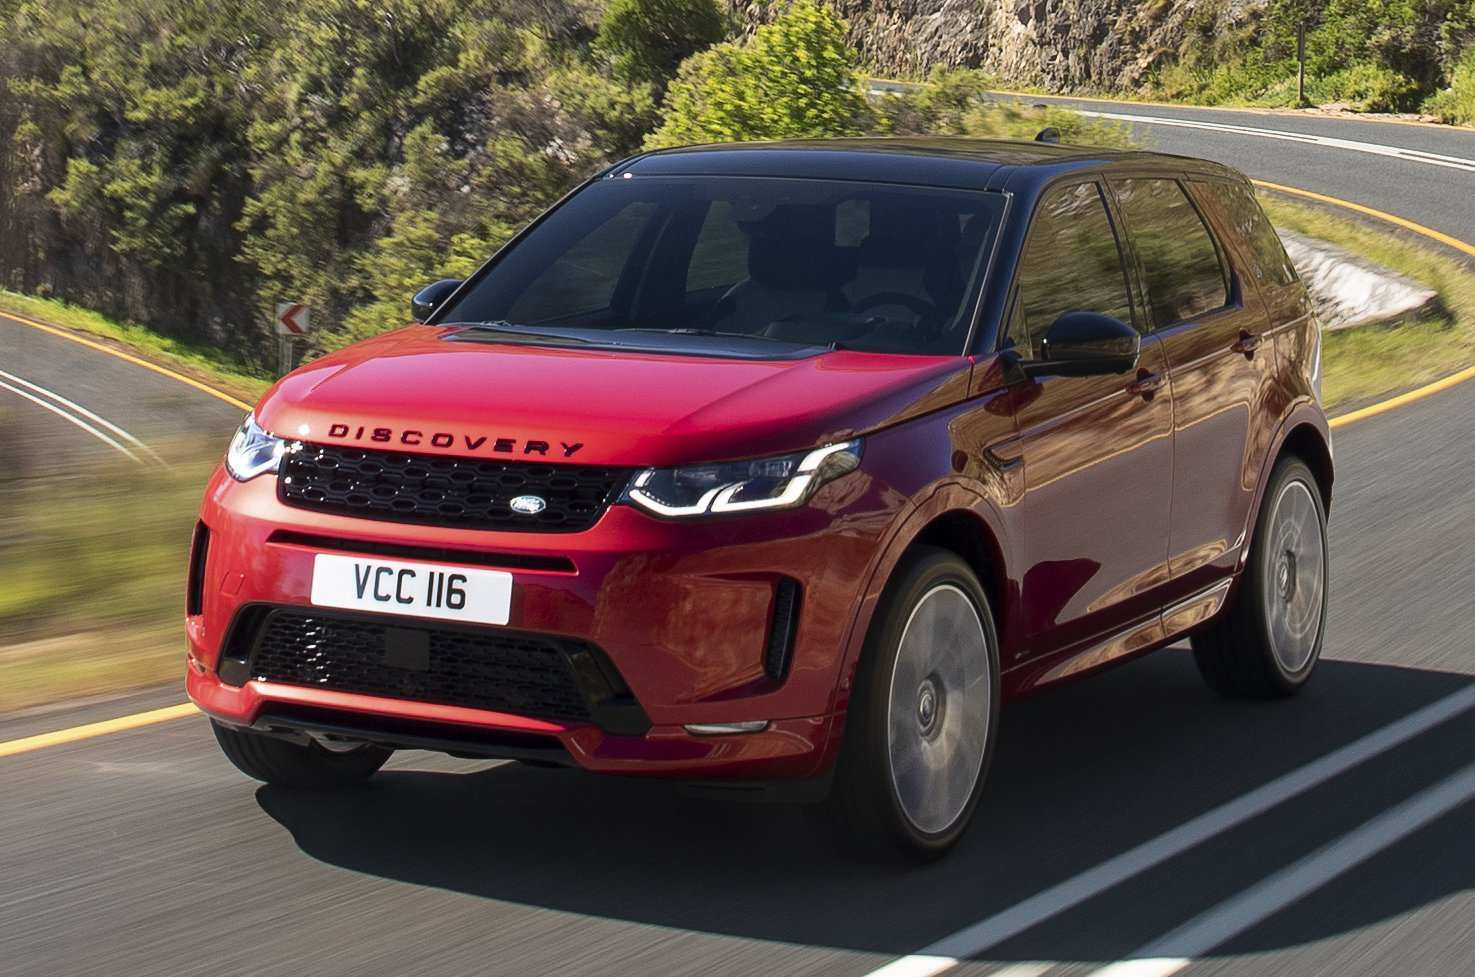 52 All New 2020 Land Rover Discovery Configurations